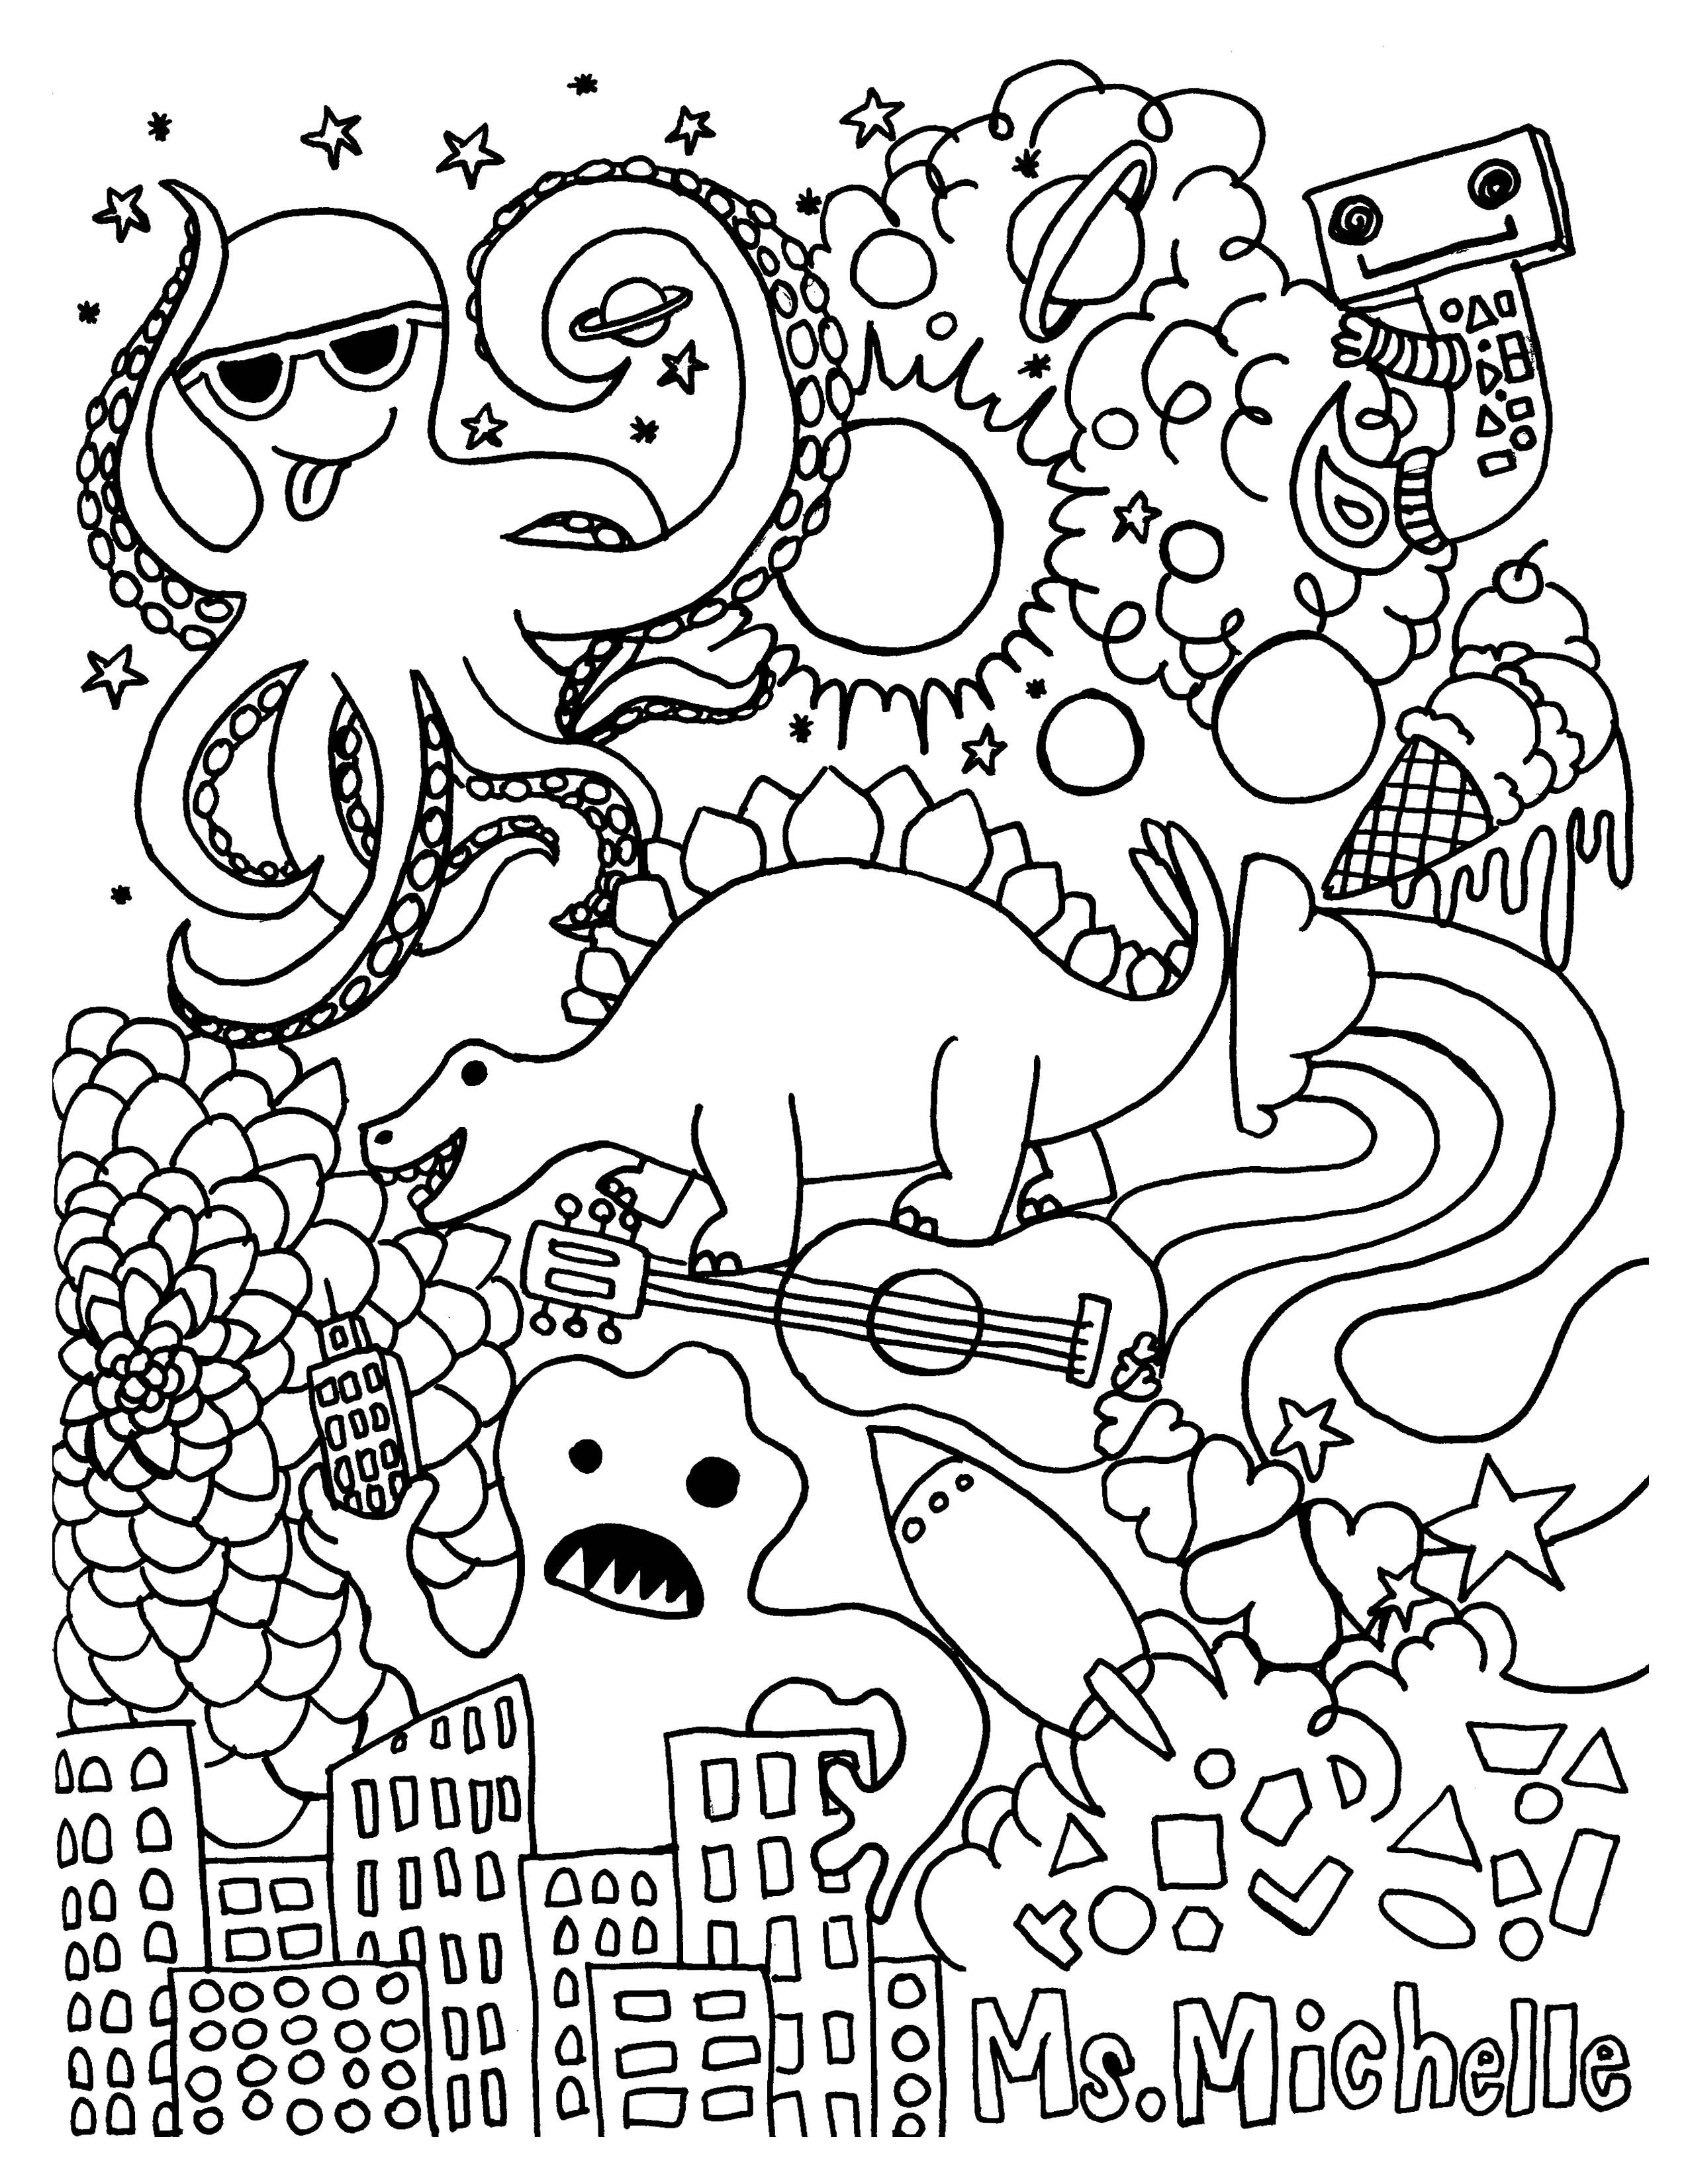 coloring pages for kids printable Collection-Transformer Coloring Pages Free Coloring Pages for Kids Printable Unique Coloring Printables 0d 16-r